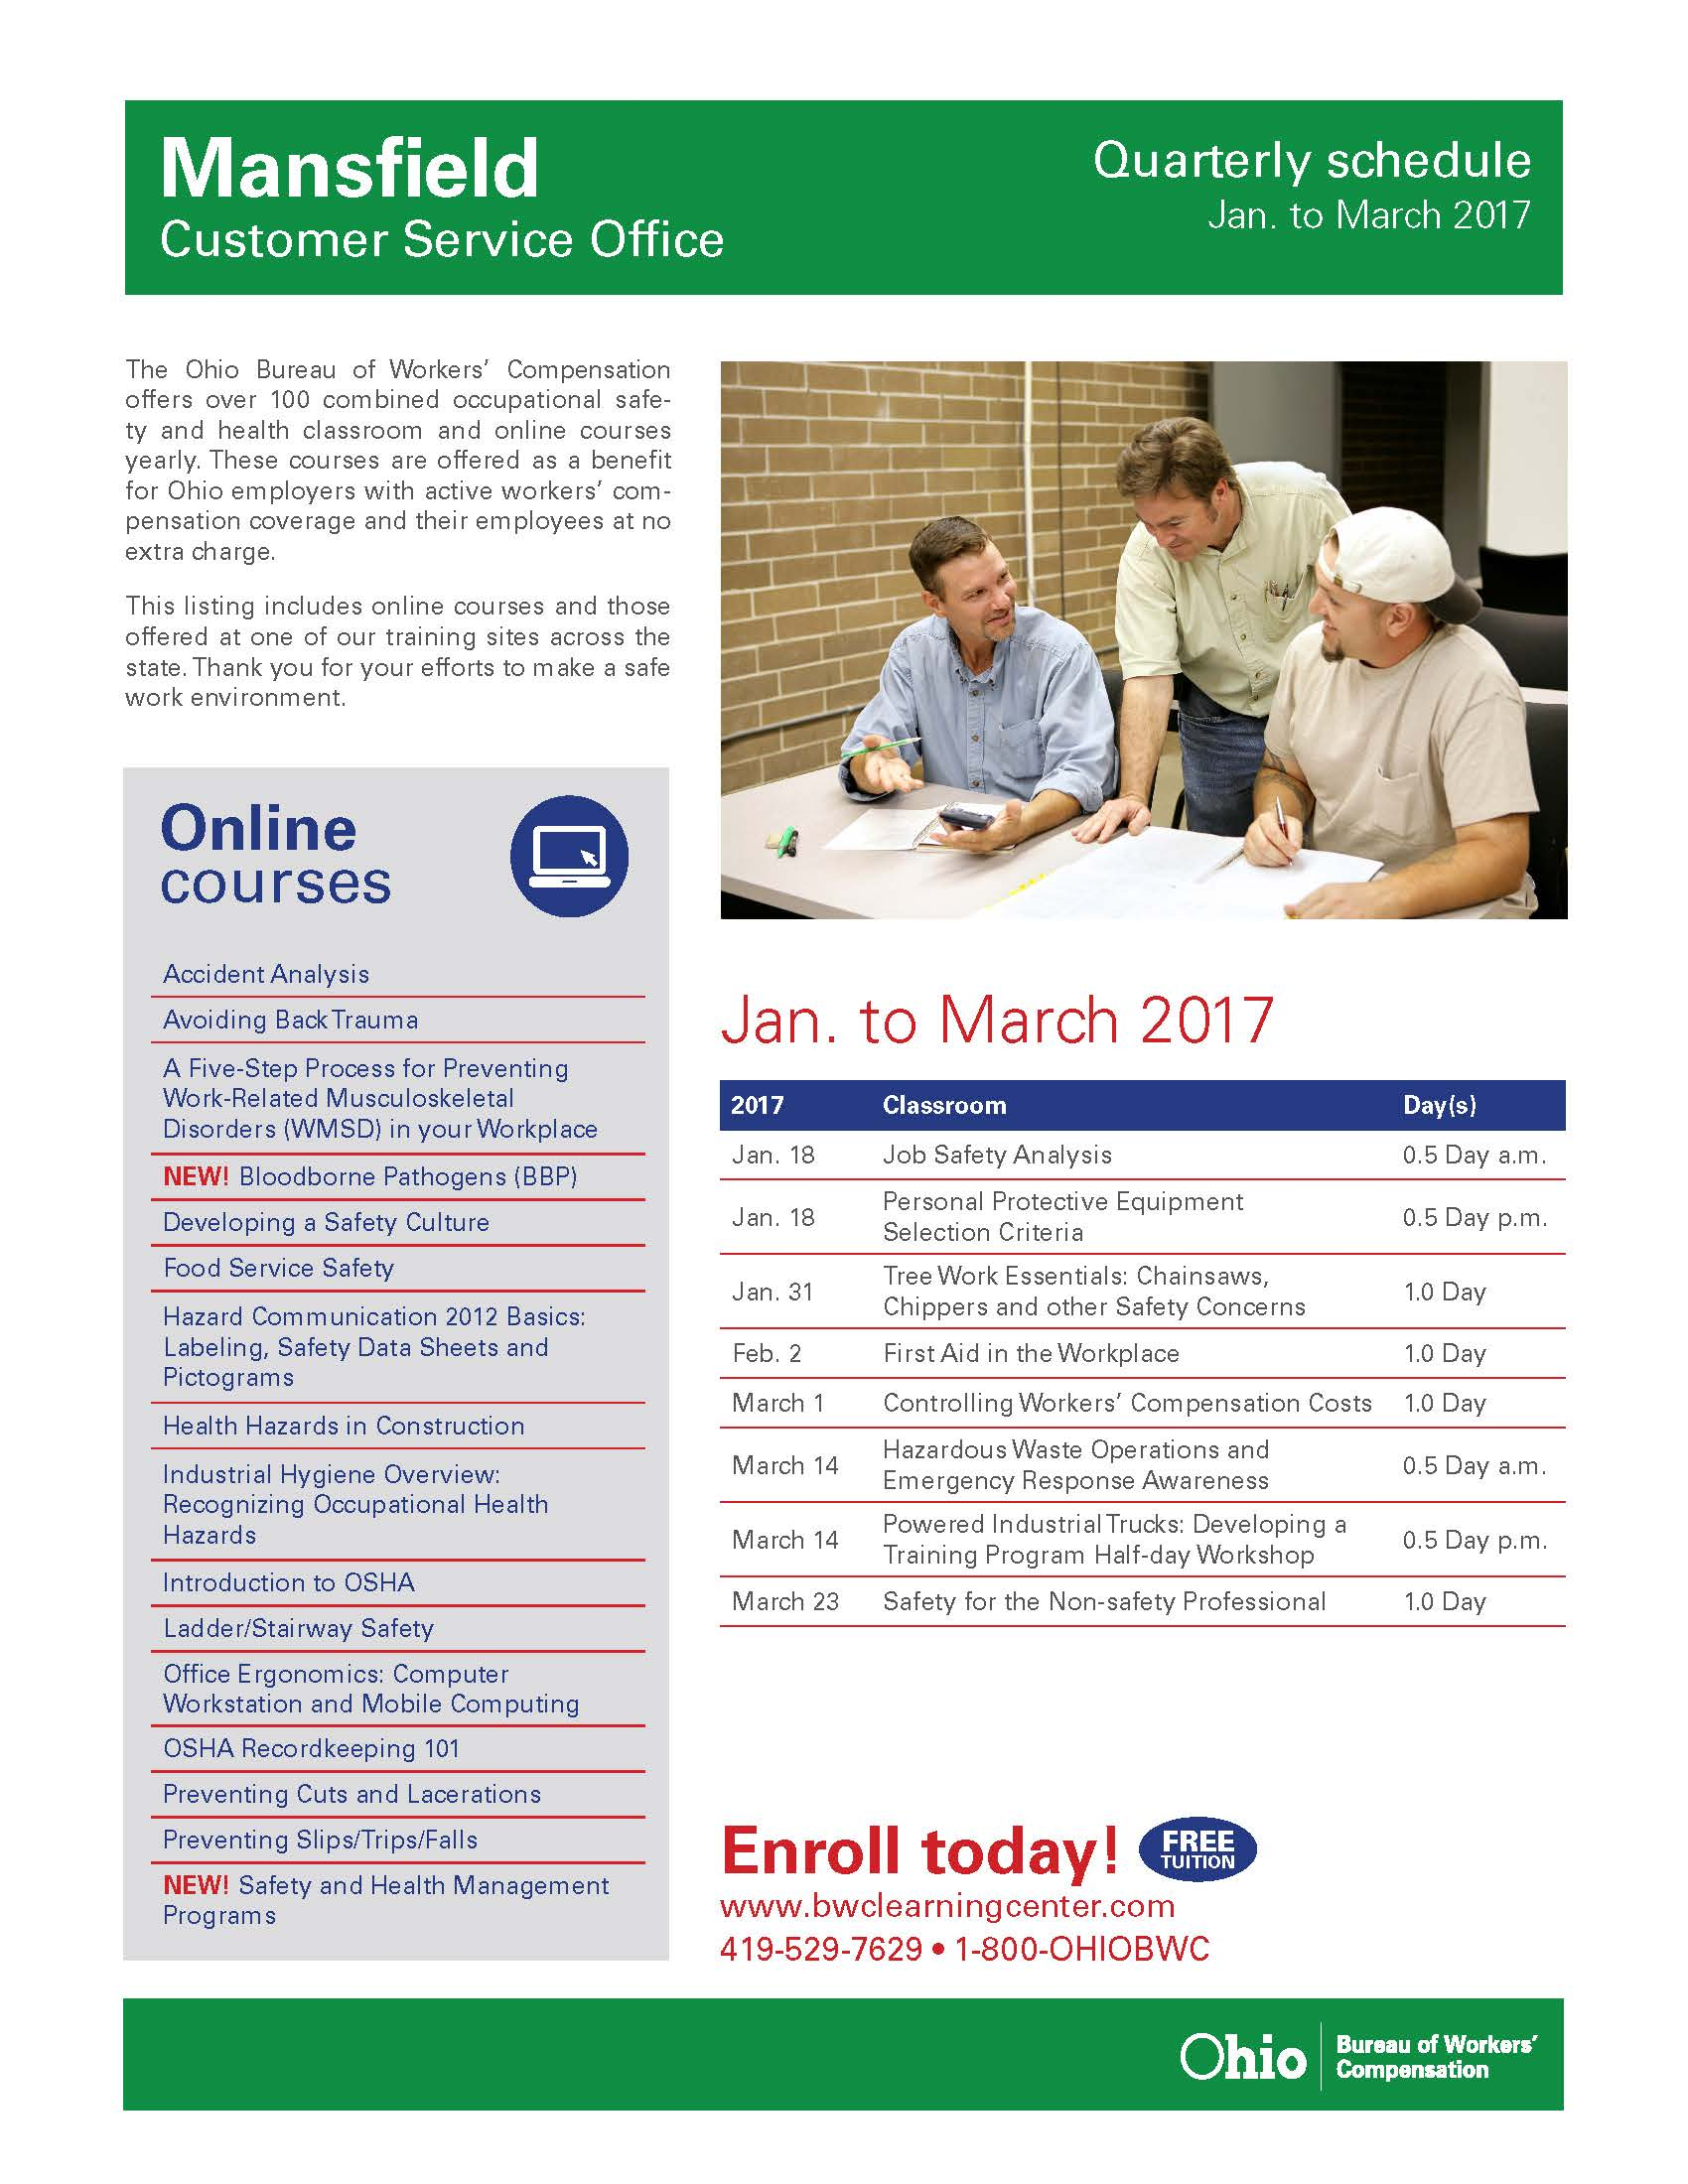 Mansfield-quarterly_January-March 2017